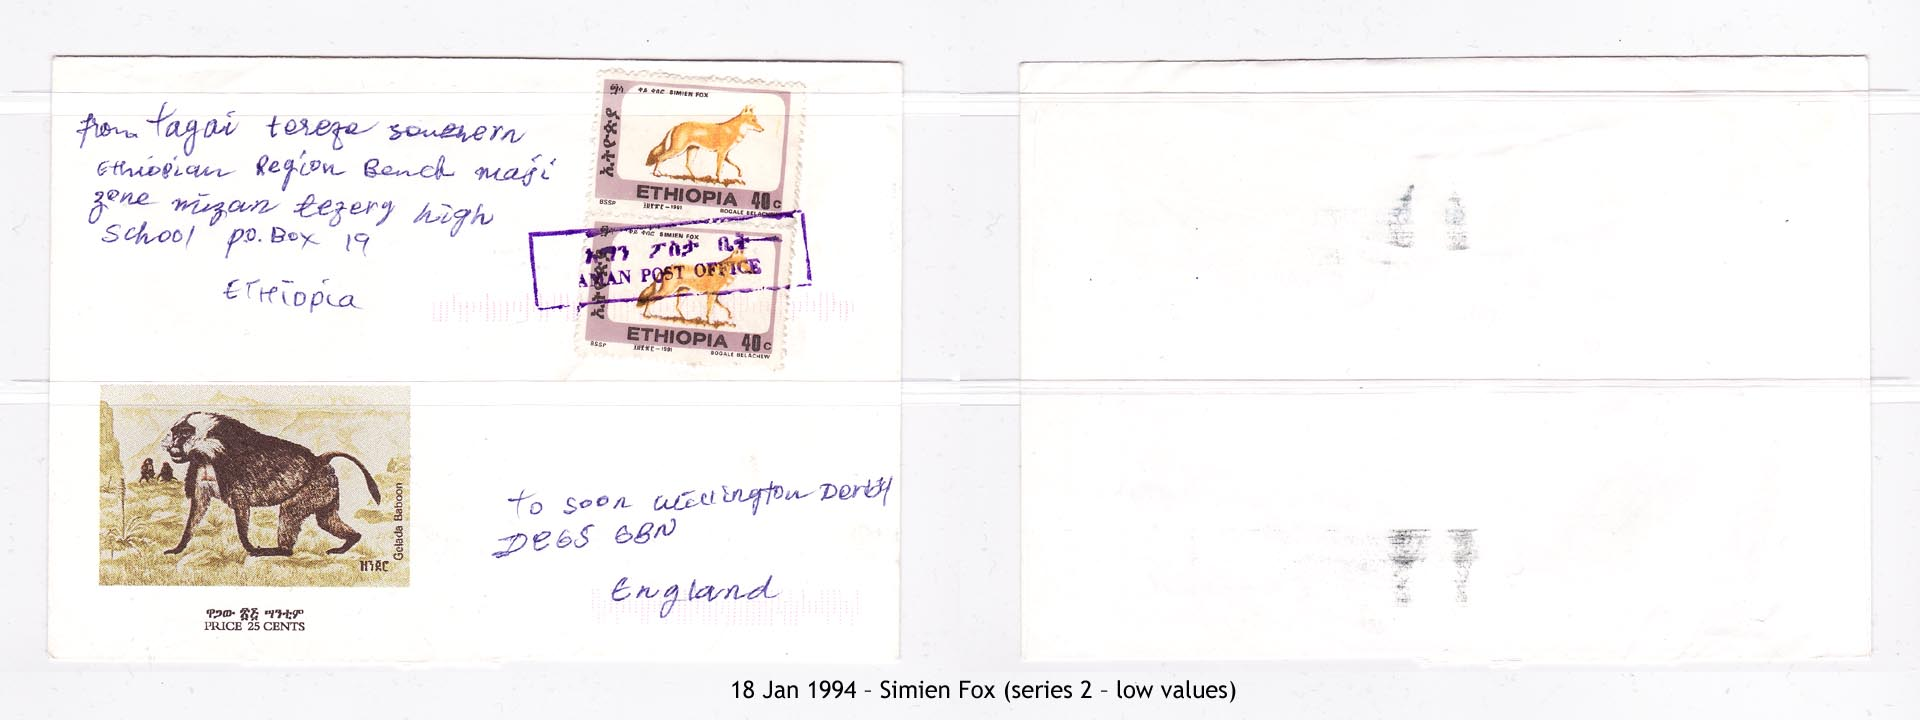 19940118 – Simien Fox (series 2 – low values)